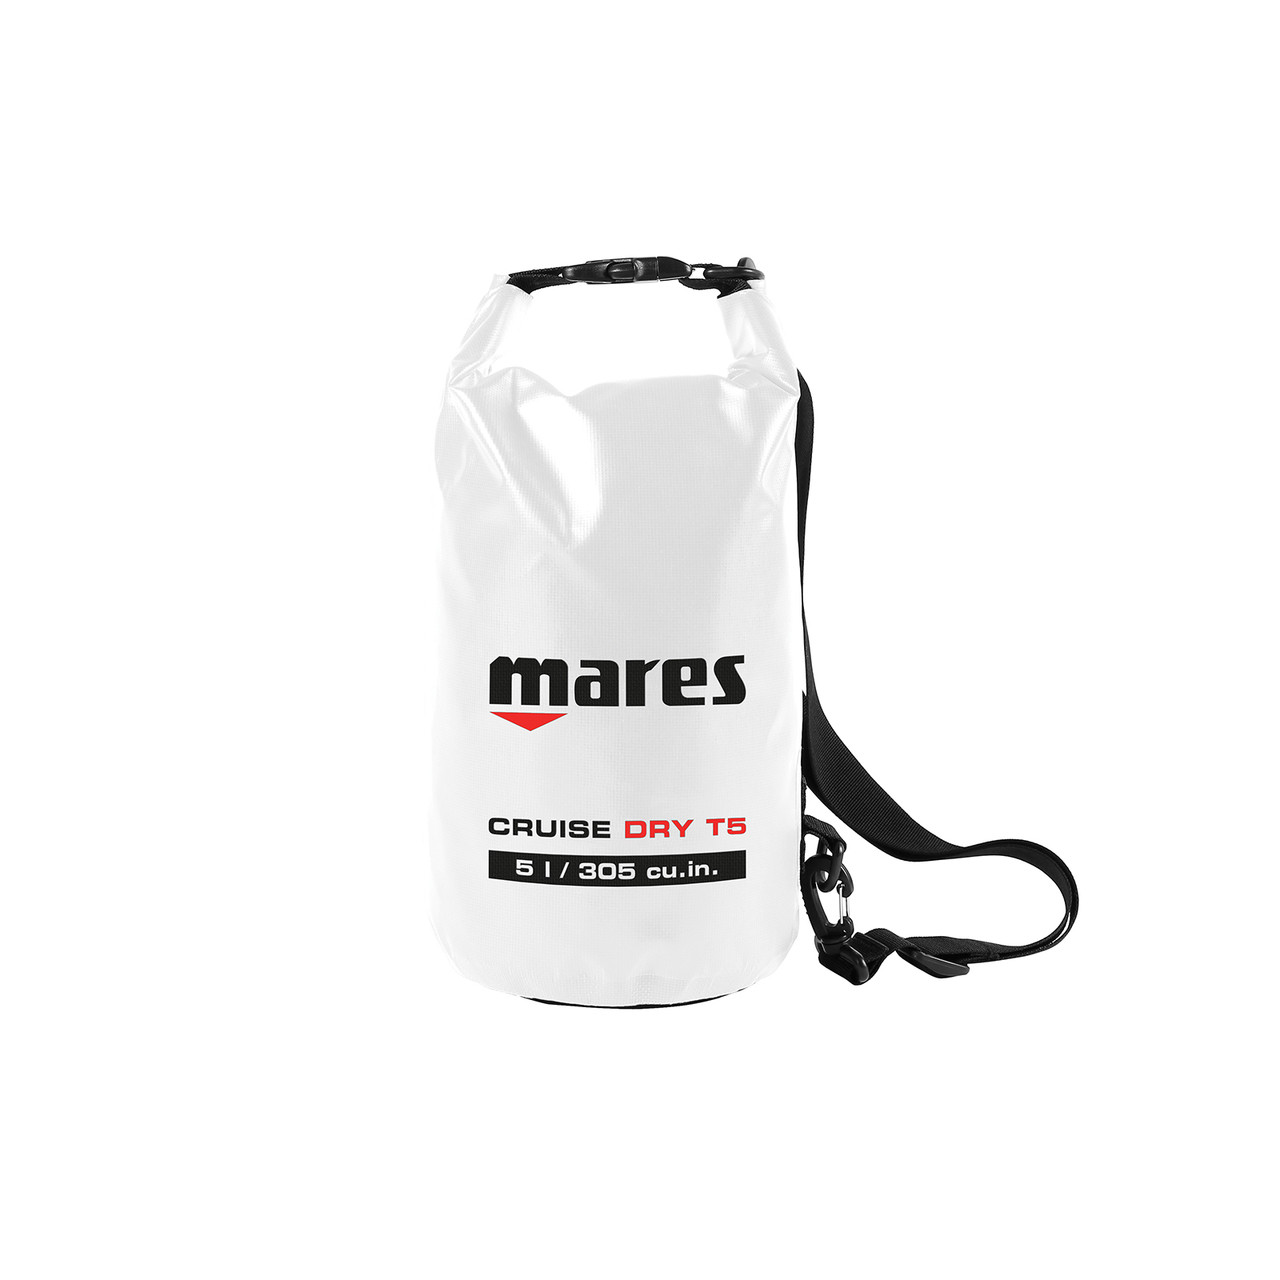 Mares Cruise Dry Bag T5 Scuba Diving Travel Dry Gear Bag 415455